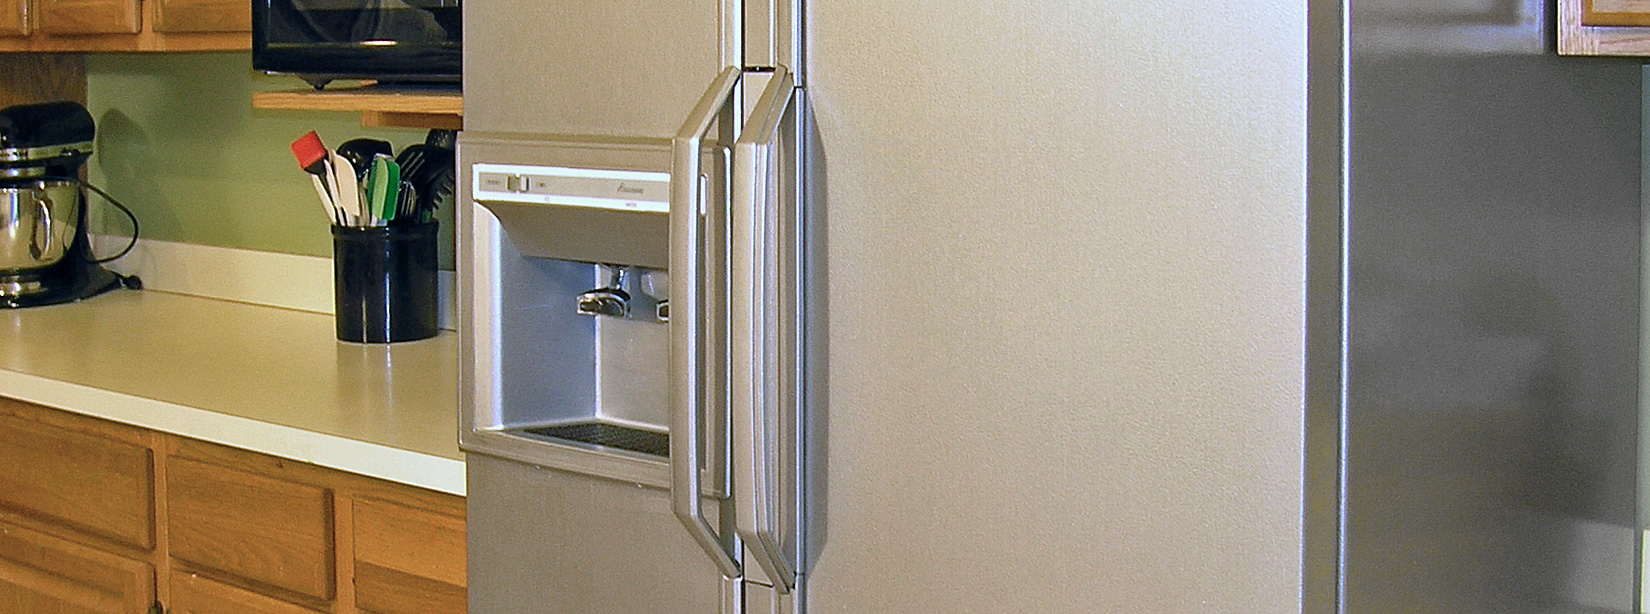 Diy Stainless Steel How To Remodel Your Kitchen On The